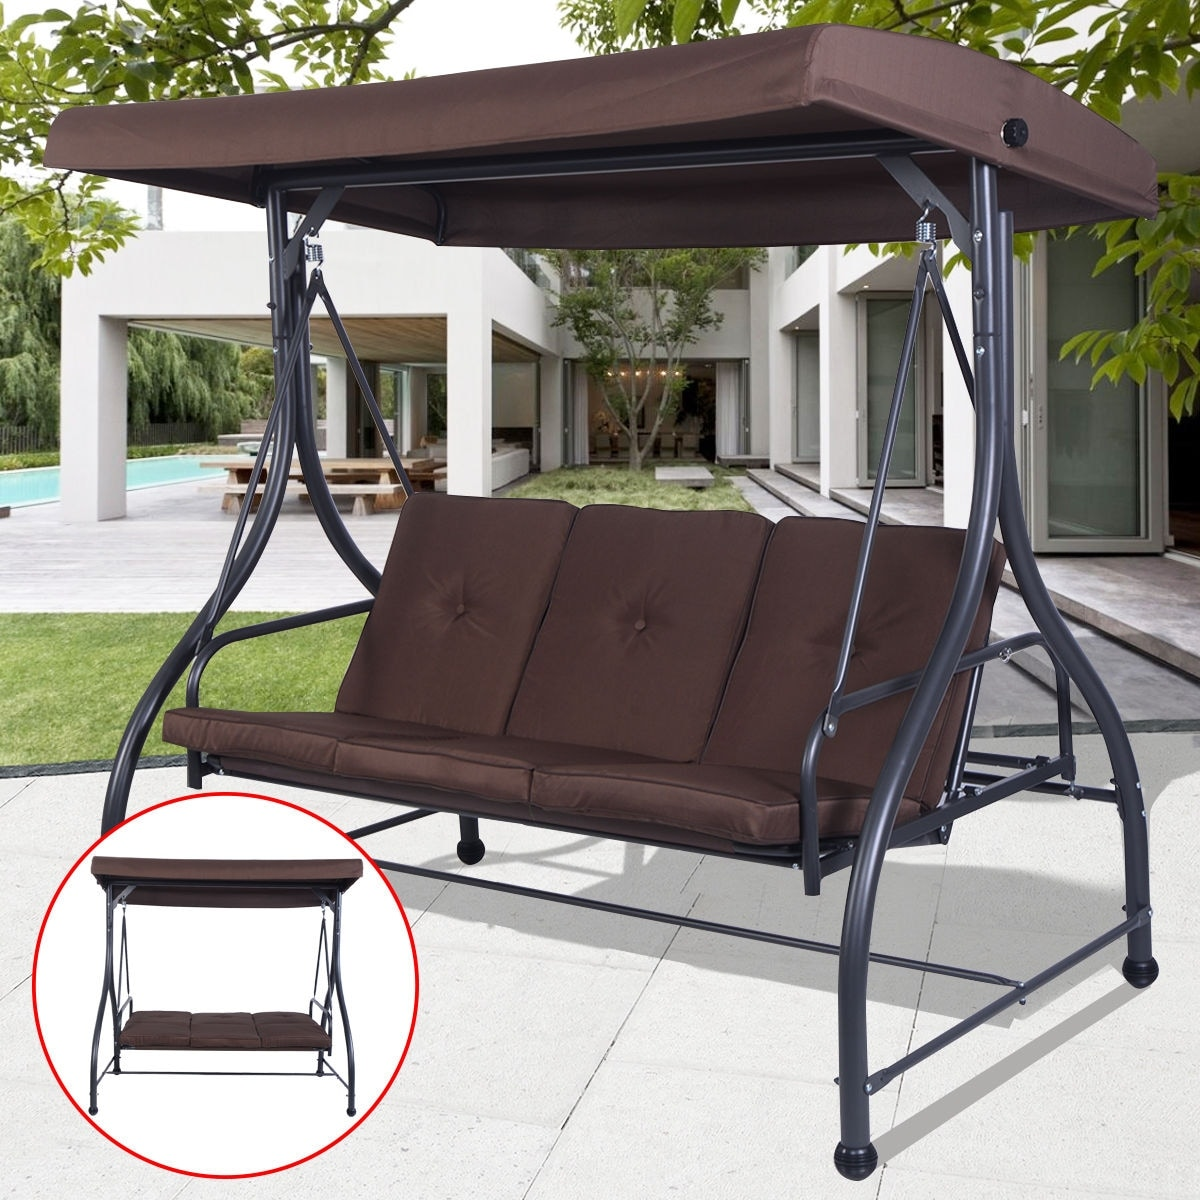 Shop Costway Converting Outdoor Swing Canopy Hammock 3 Seats Patio Deck  Furniture Brown   Free Shipping Today   Overstock.com   15969299